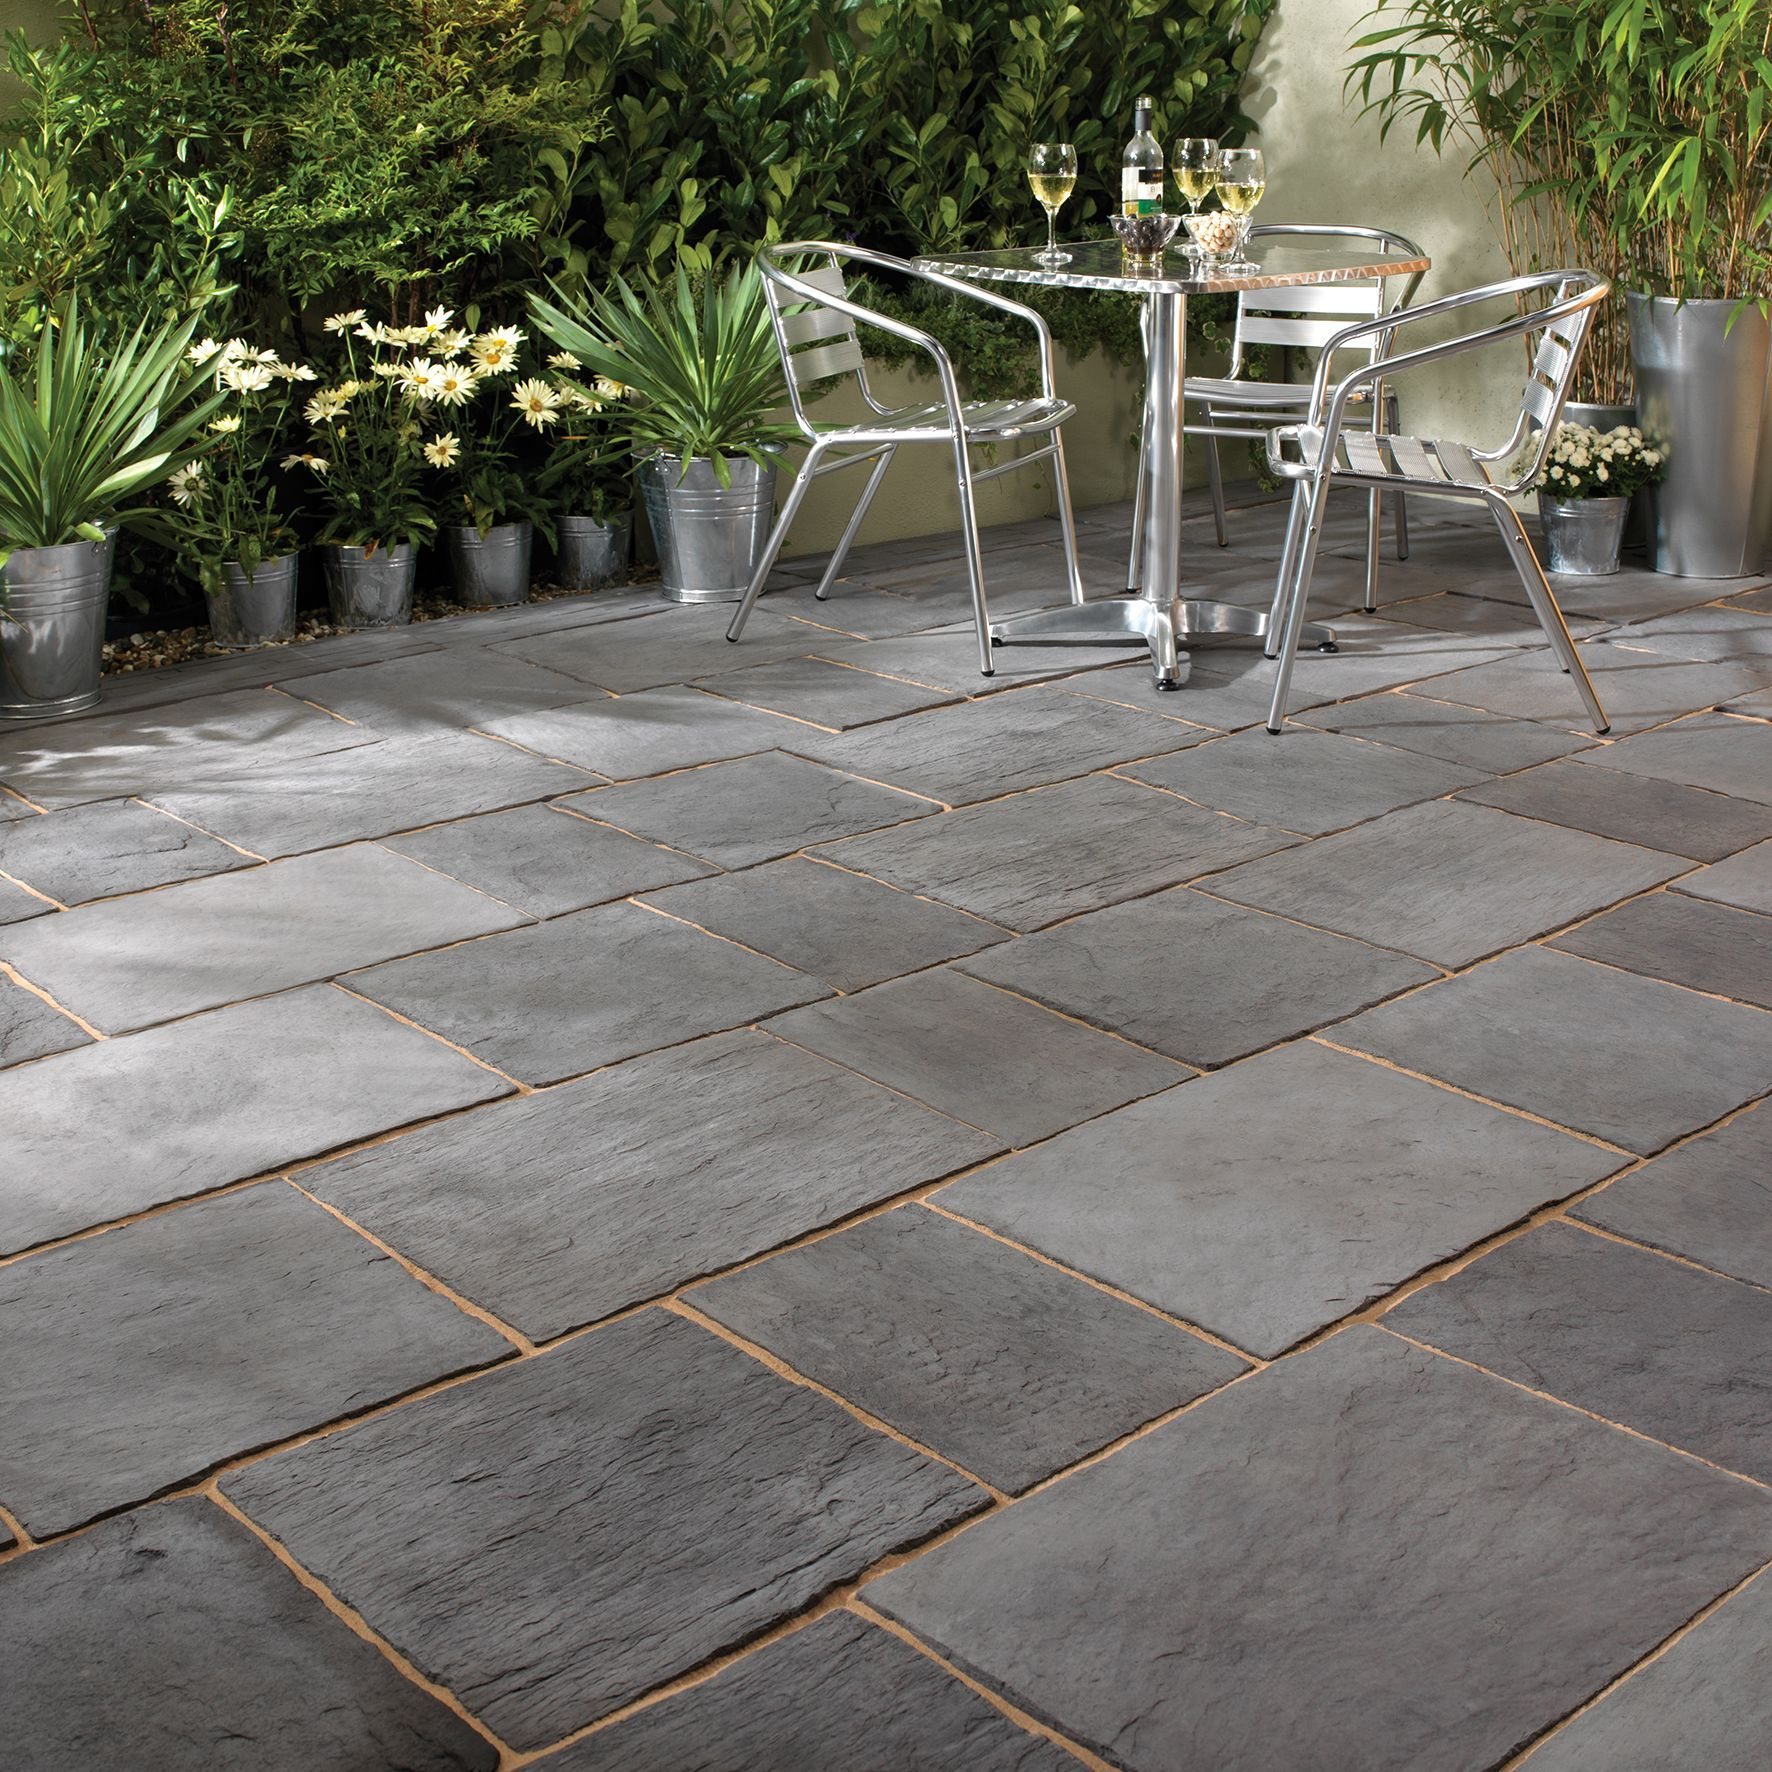 Explore Slate Pavers, Paving Slabs and more!